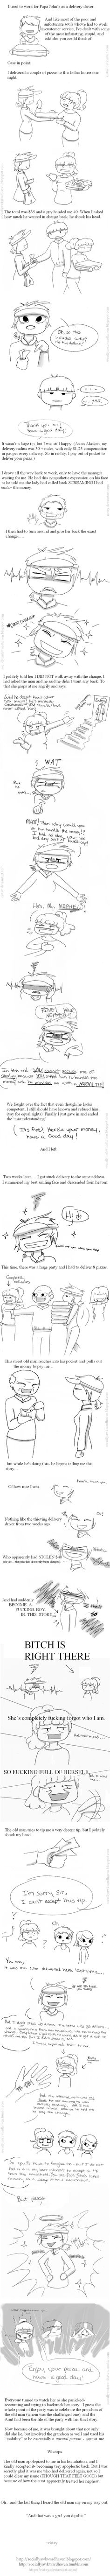 Papa John's Adventure Made By Ristay At Deviantart  Link ~ http://ristay.deviantart.com/